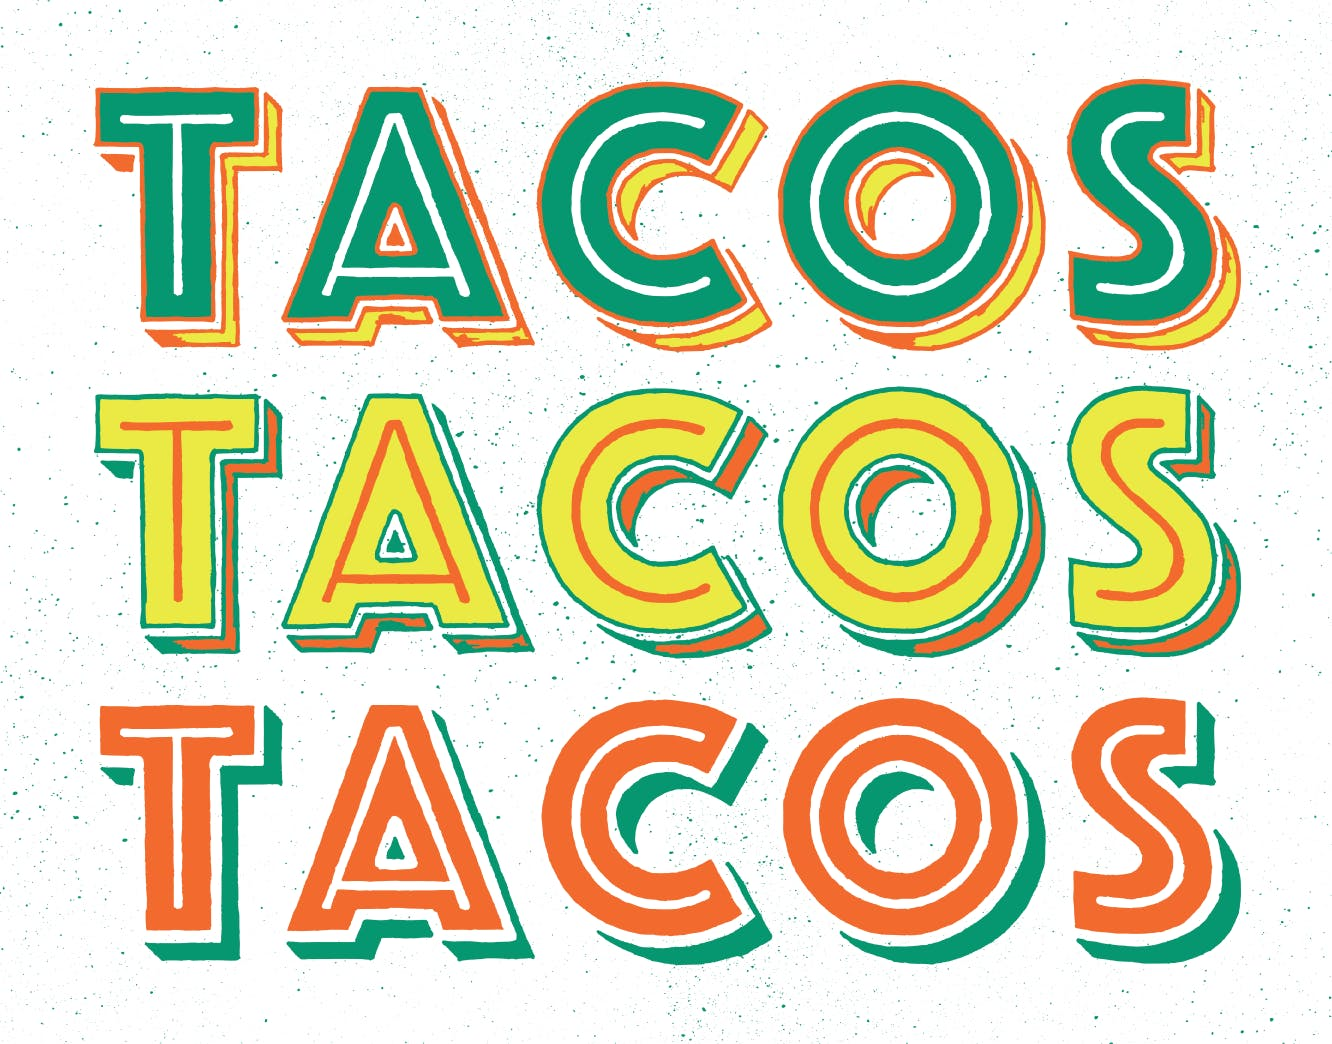 the word tacos